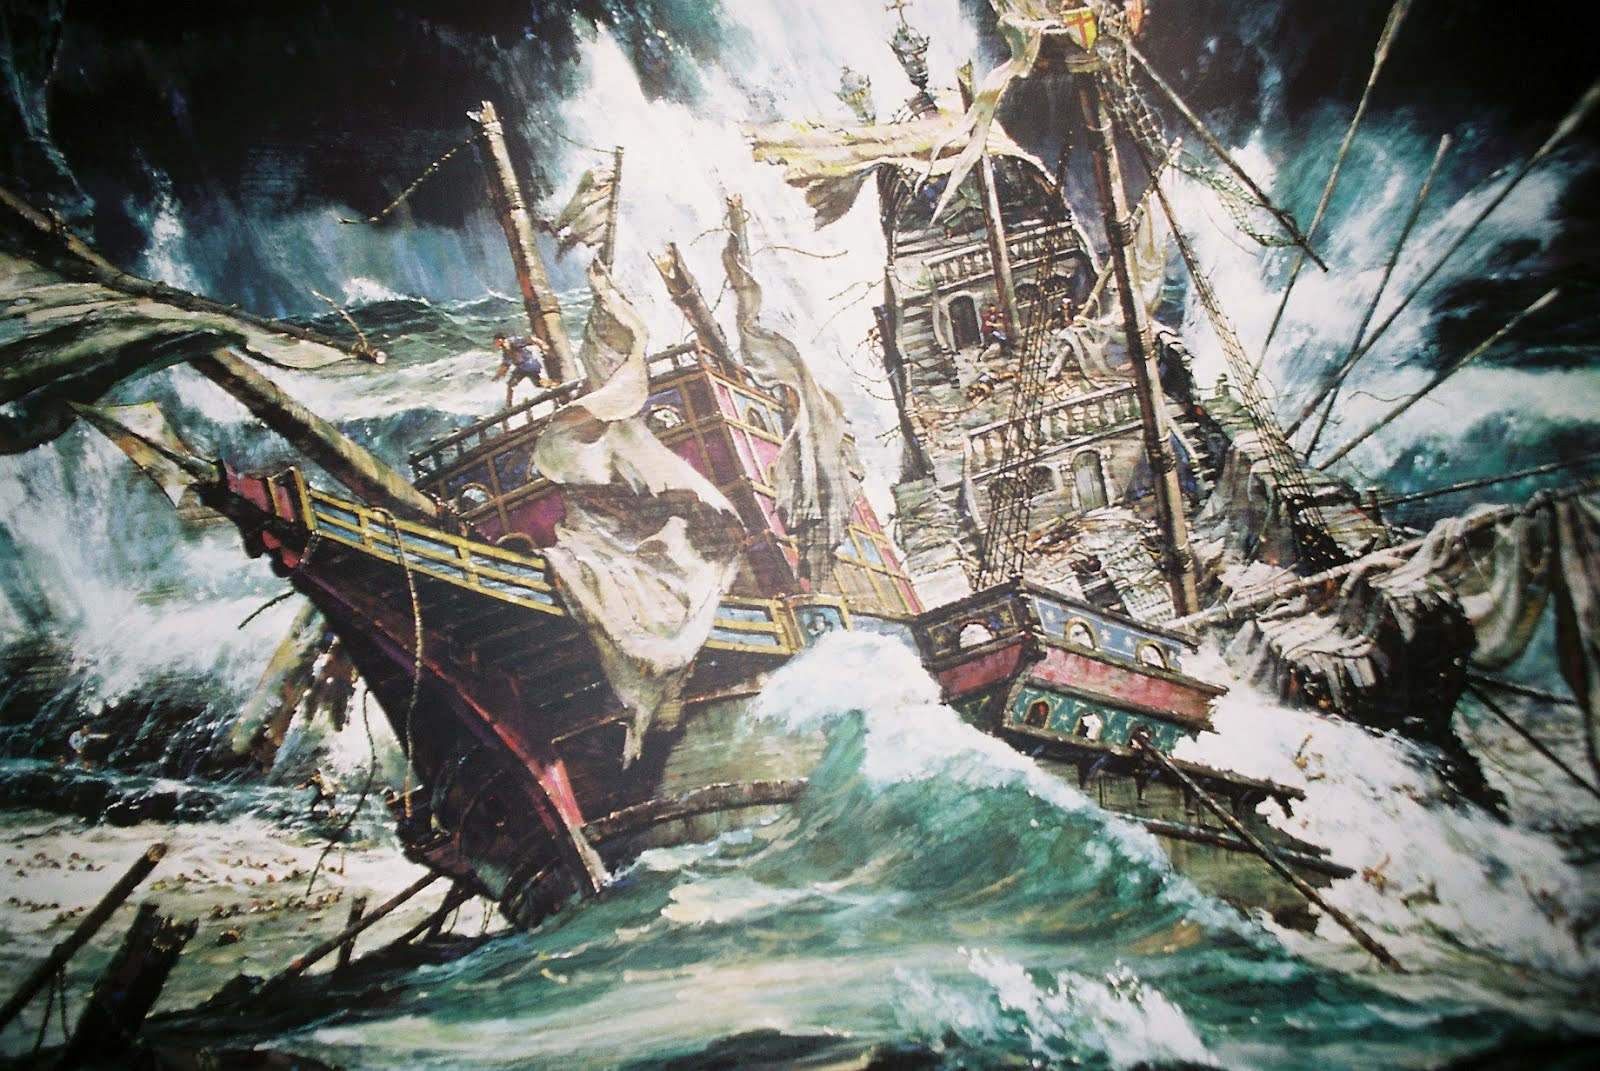 graphic firing table battles long ago armada  half the armada were wrecked and thousands of spaniards died perhaps the ugliest part of that story is that most of the crews that survived the storms and